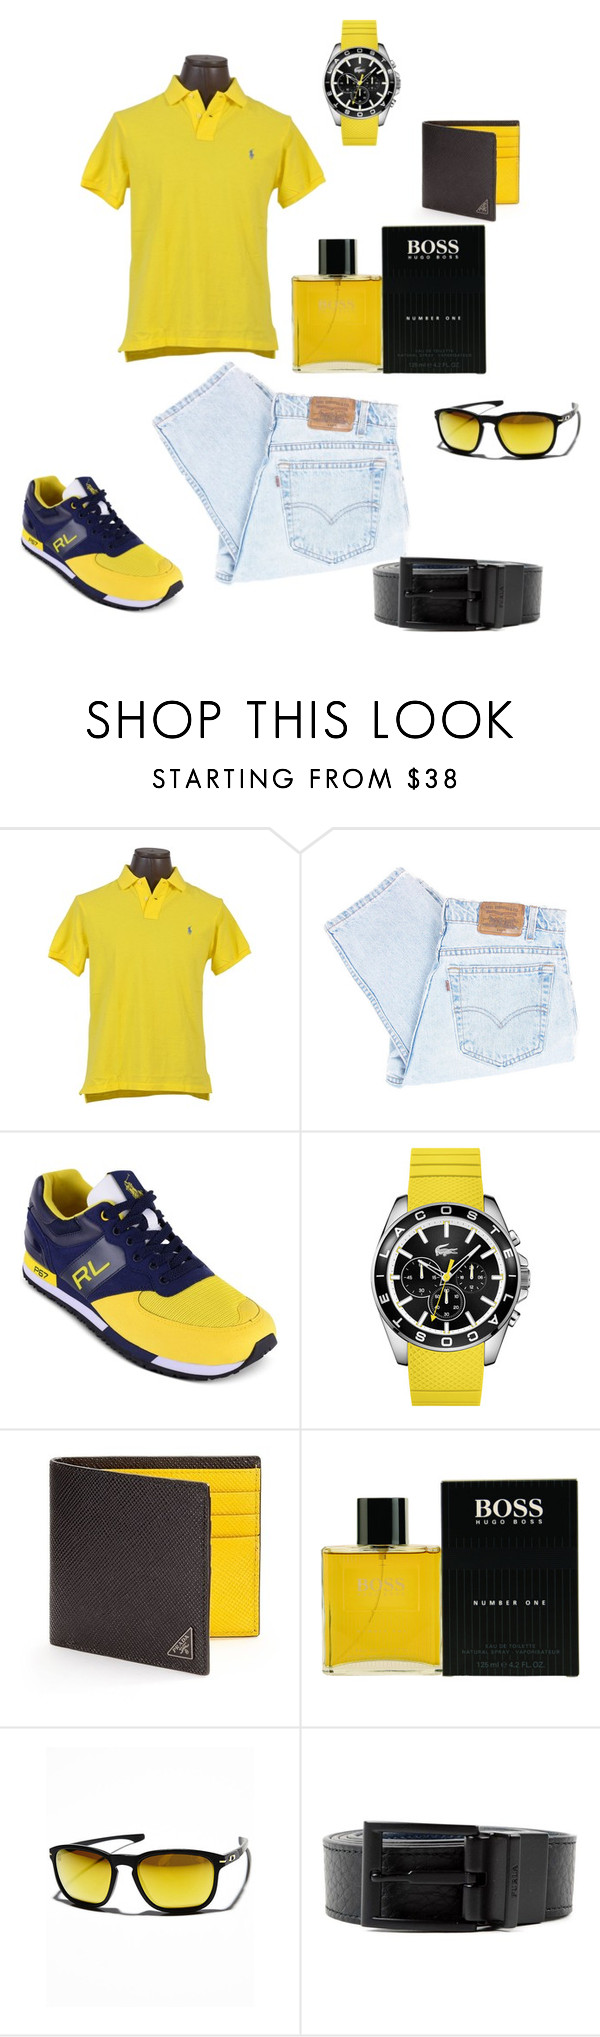 """""""Mello Yellow!"""" by whatsyourswagg ❤ liked on Polyvore featuring Polo Ralph Lauren, Levi's, Lacoste, Prada, HUGO, Oakley, Furla, men's fashion and menswear"""